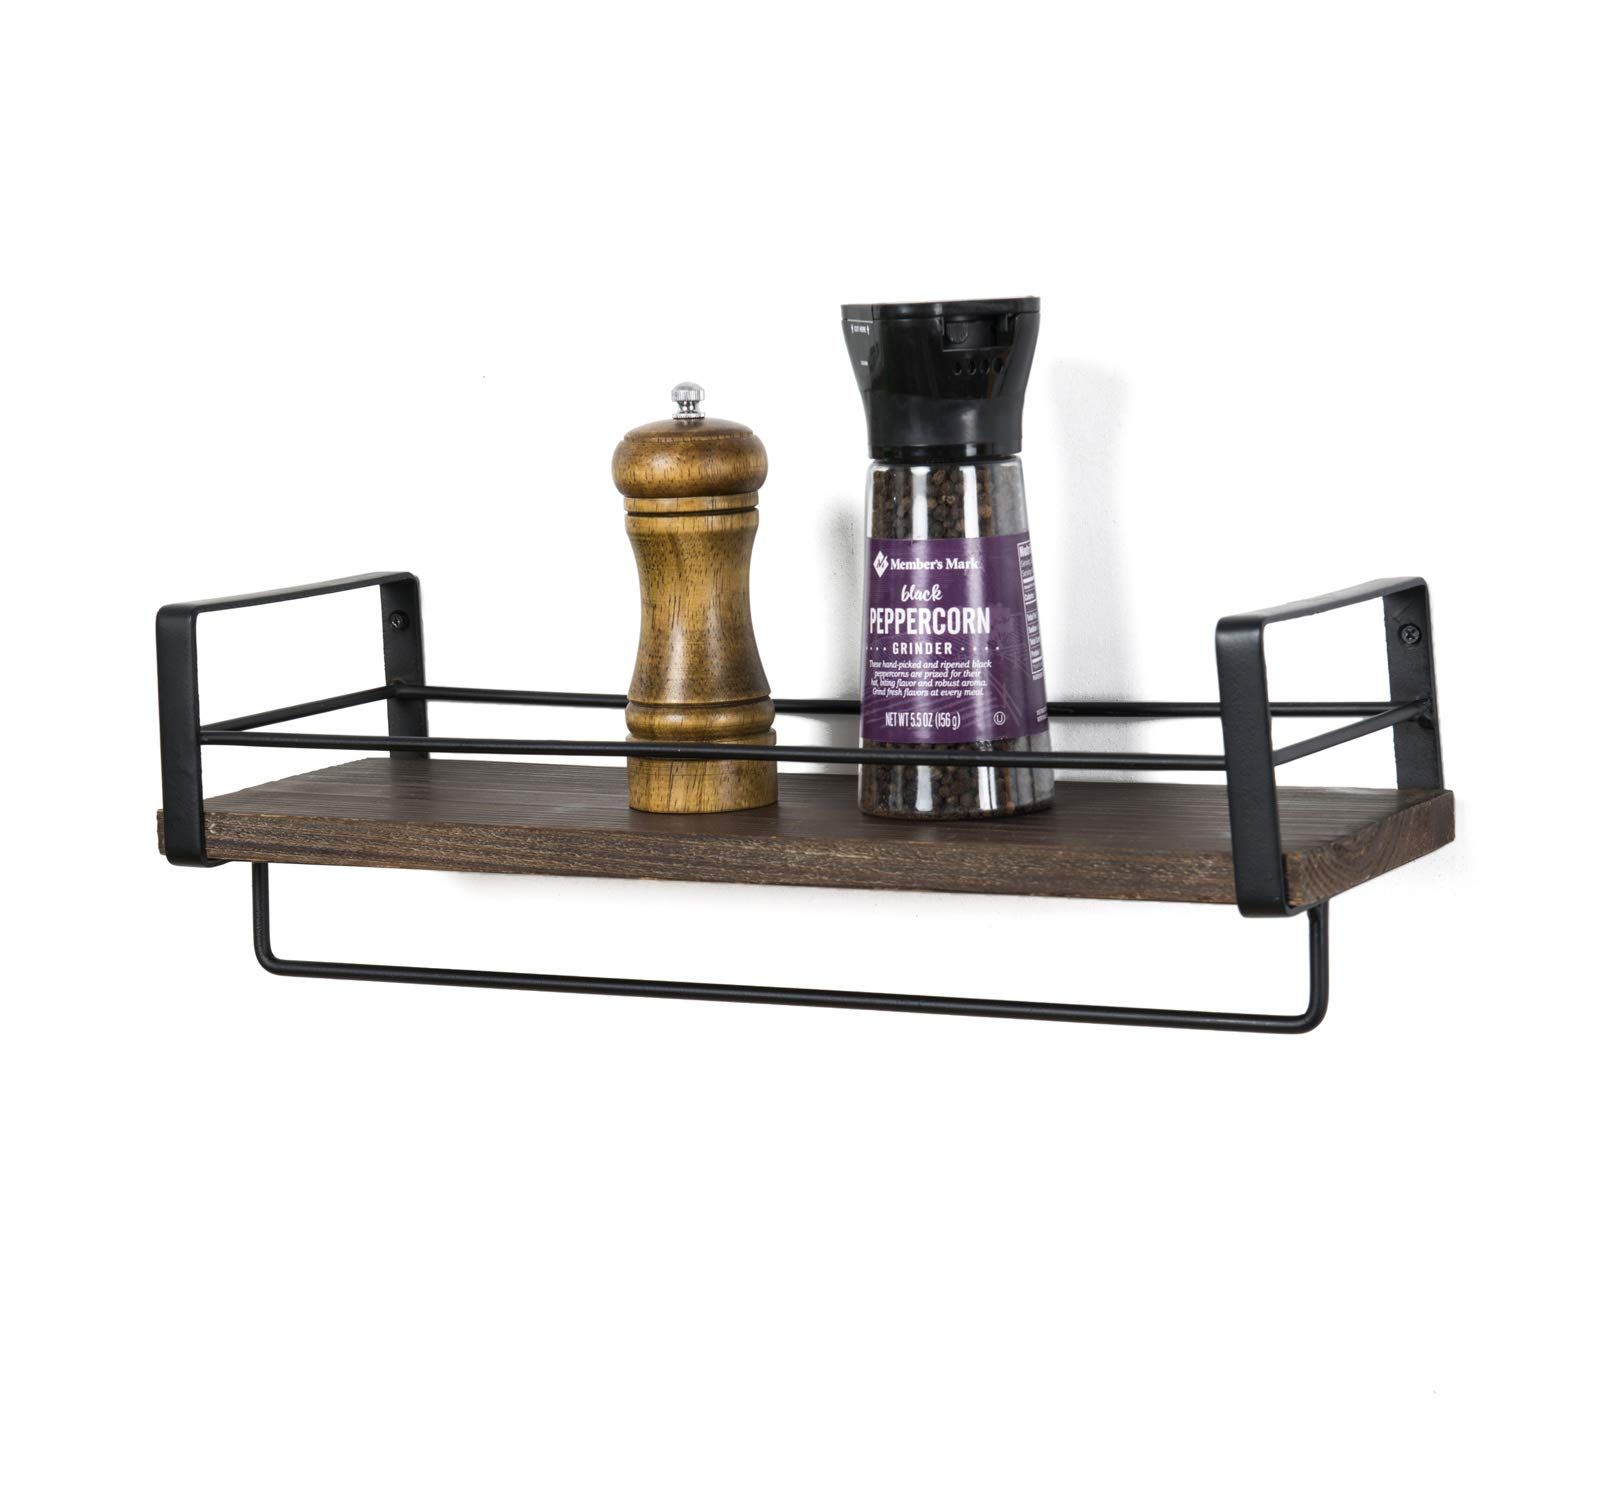 SODUKU Rustic Kitchen Wood Wall Shelf, Spice Rack Shelf with Towel Bar,Wood and Metal Floating Shelves Wall Mounted Toilet Storage Shelf for Kitchen Bathroom Bedroom Living Room - STURDY STRUCTURE- Simple design rustic wood shelves constructed of solid paulownia wood boards and powder coated metal brackets.Lightweight but solid wood can holds up to 50 lbs. EASY INSTALLATION - There comes with necessary durable hardware tool,super easy to assemble on the wall.The rustic wood shelves overall dimension: 16.33''L X 5.6''W X 5.9''H EFFICIENT SPACE SAVER - Our rustic wood wall shelf offers a large space for storage and can display in your kitchen, living room, bedroom, bathroom, entryway and more. Creates ample shelf space in unused areas of the home,perfect solution for compact areas. - wall-shelves, living-room-furniture, living-room - 61MIkgRiJcL -